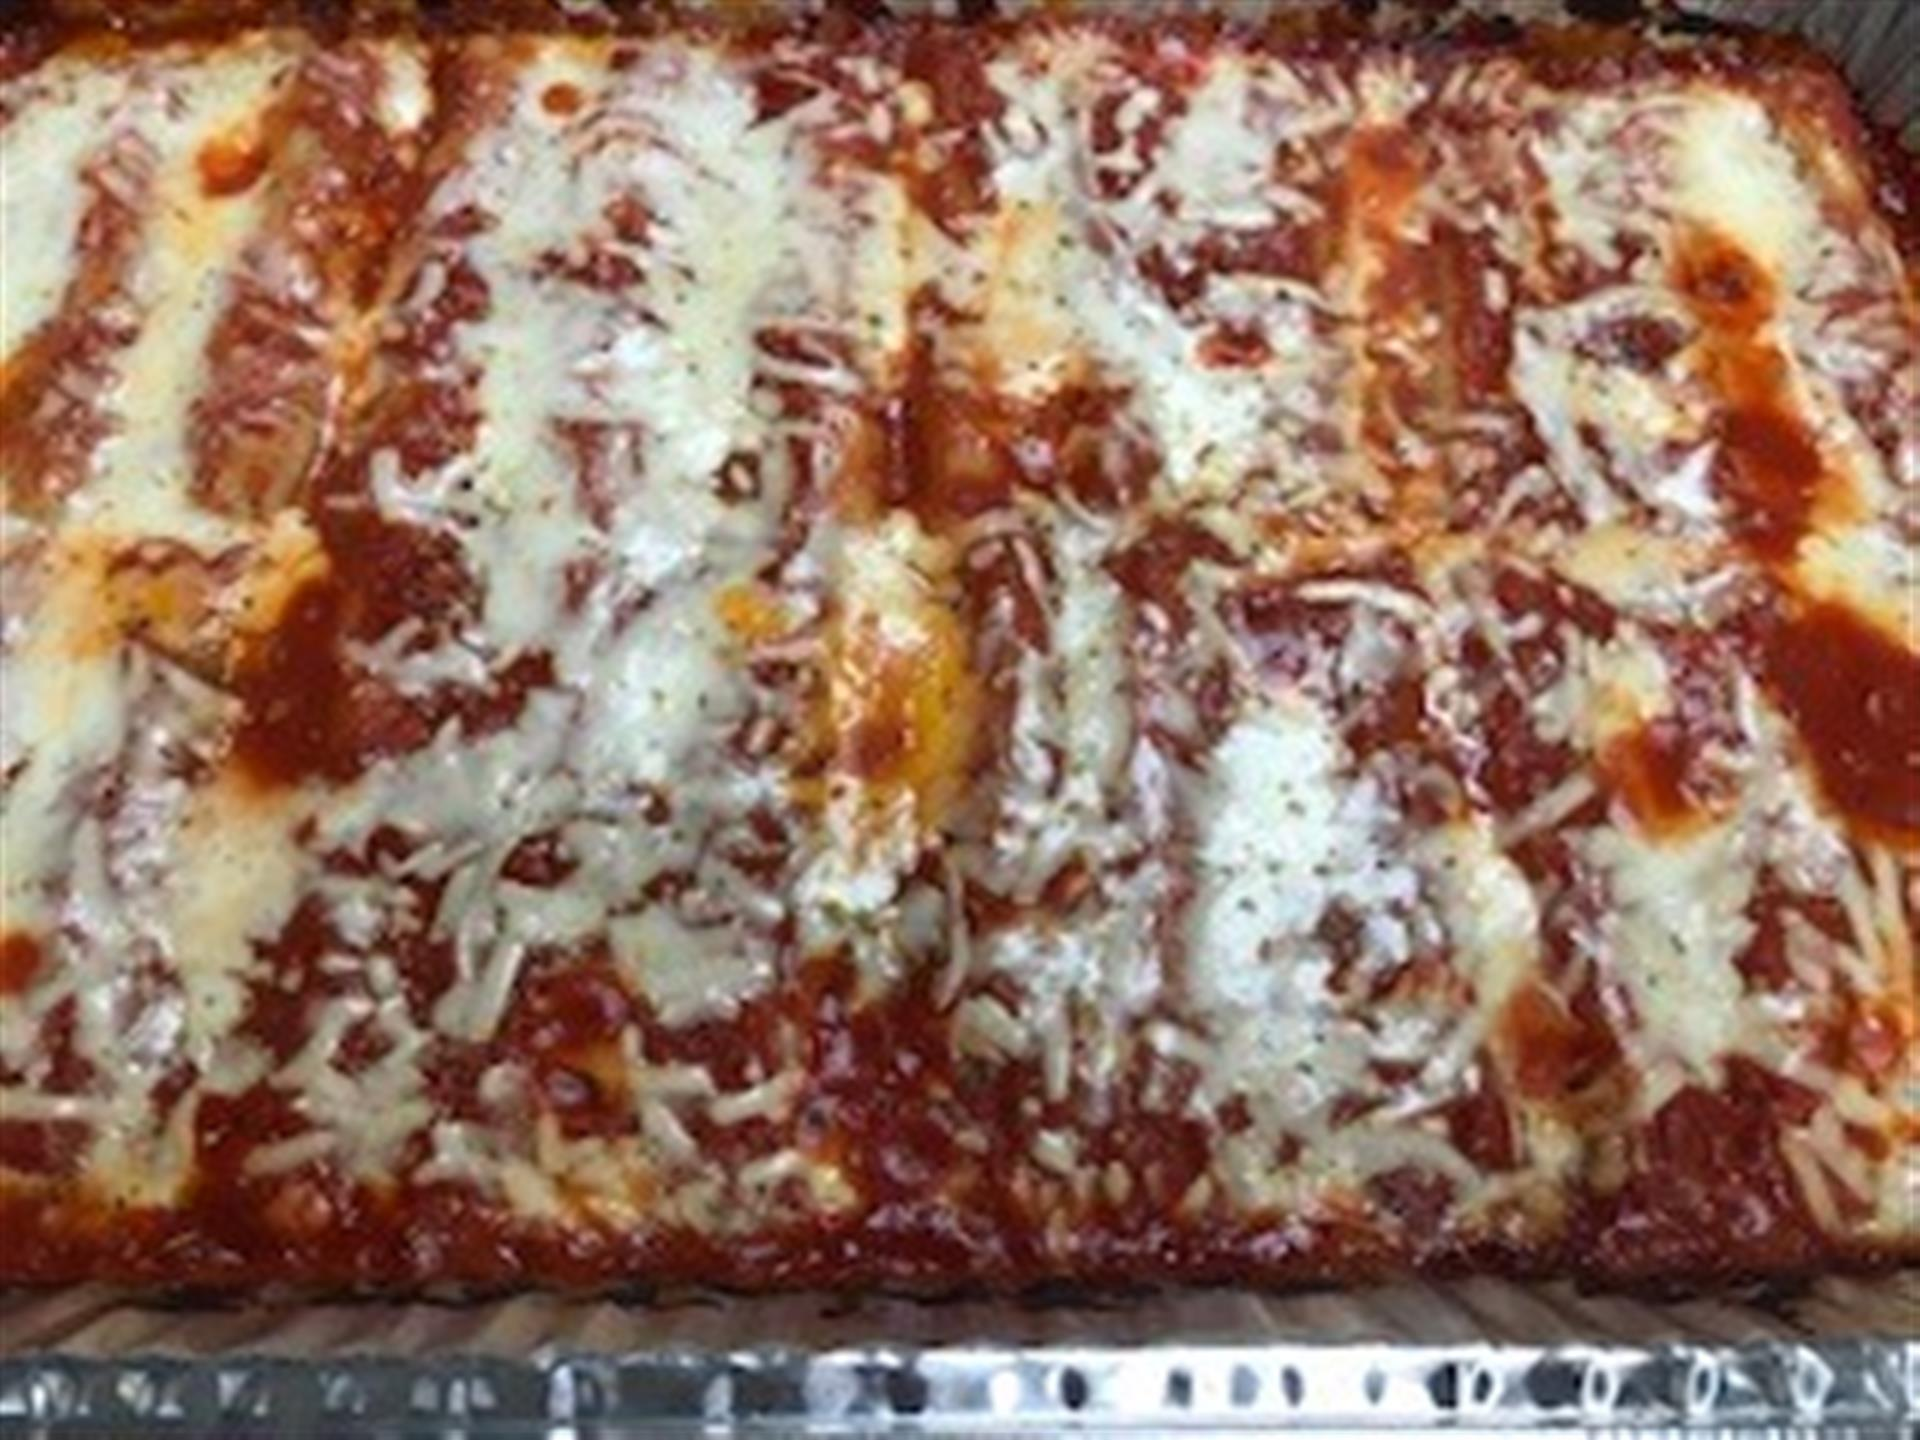 Tray of Eggplant Parmesan. Lightly breaded eggplants cooked to perfection, covered in our signature homemade marinara sauce, imported house-grated Romano cheese, and melted mozzarella